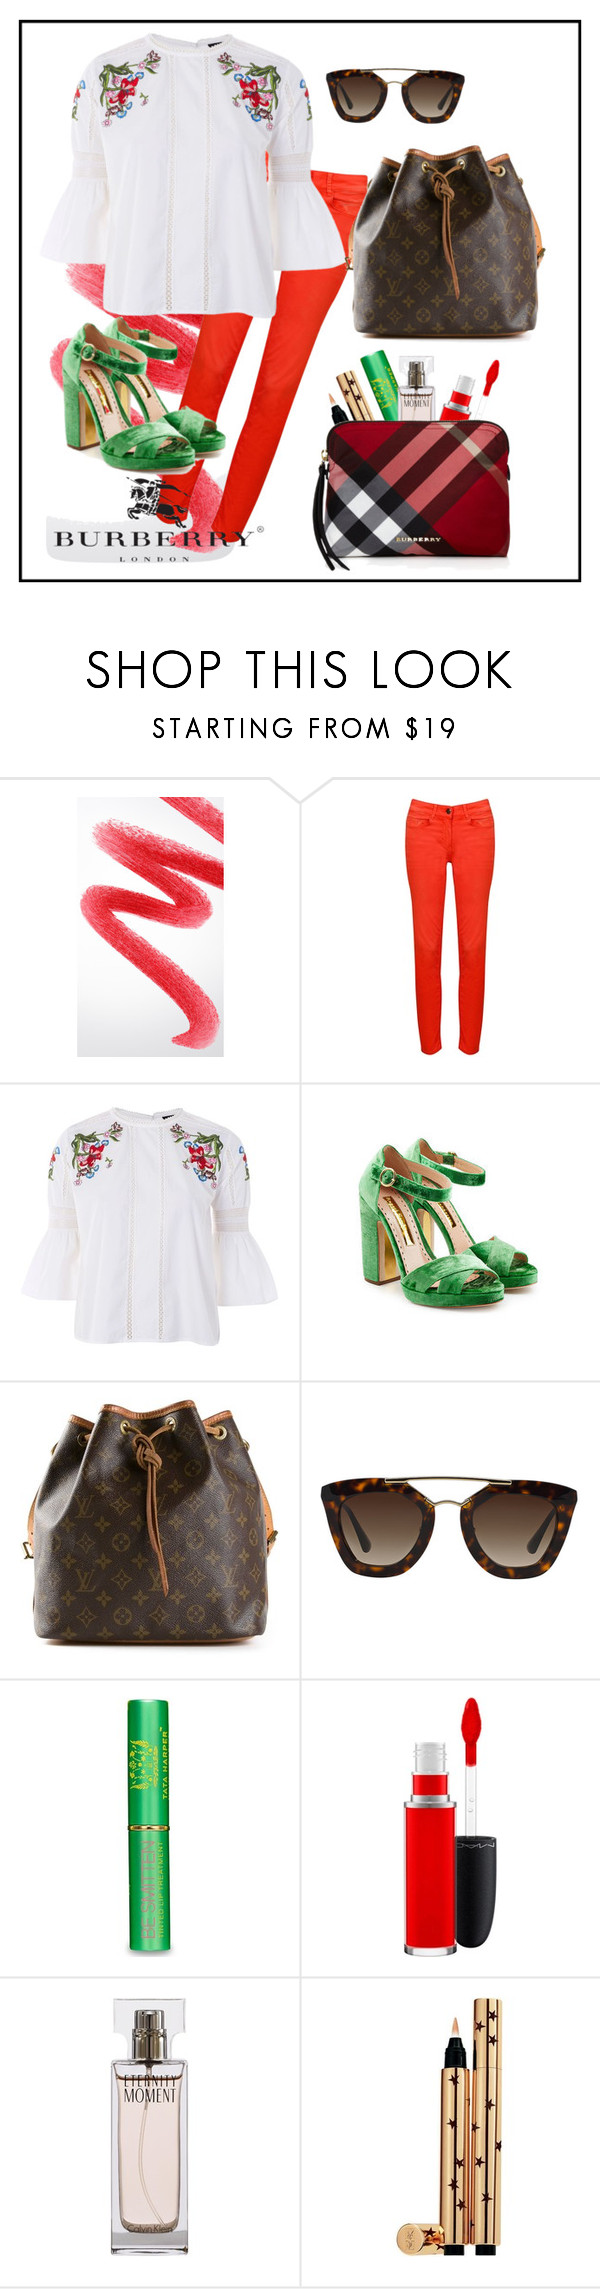 """wtw?"" by chambiewonder ❤ liked on Polyvore featuring Burberry, Relish, Topshop, Rupert Sanderson, Louis Vuitton, Prada, Tata Harper, MAC Cosmetics, Calvin Klein and Yves Saint Laurent"